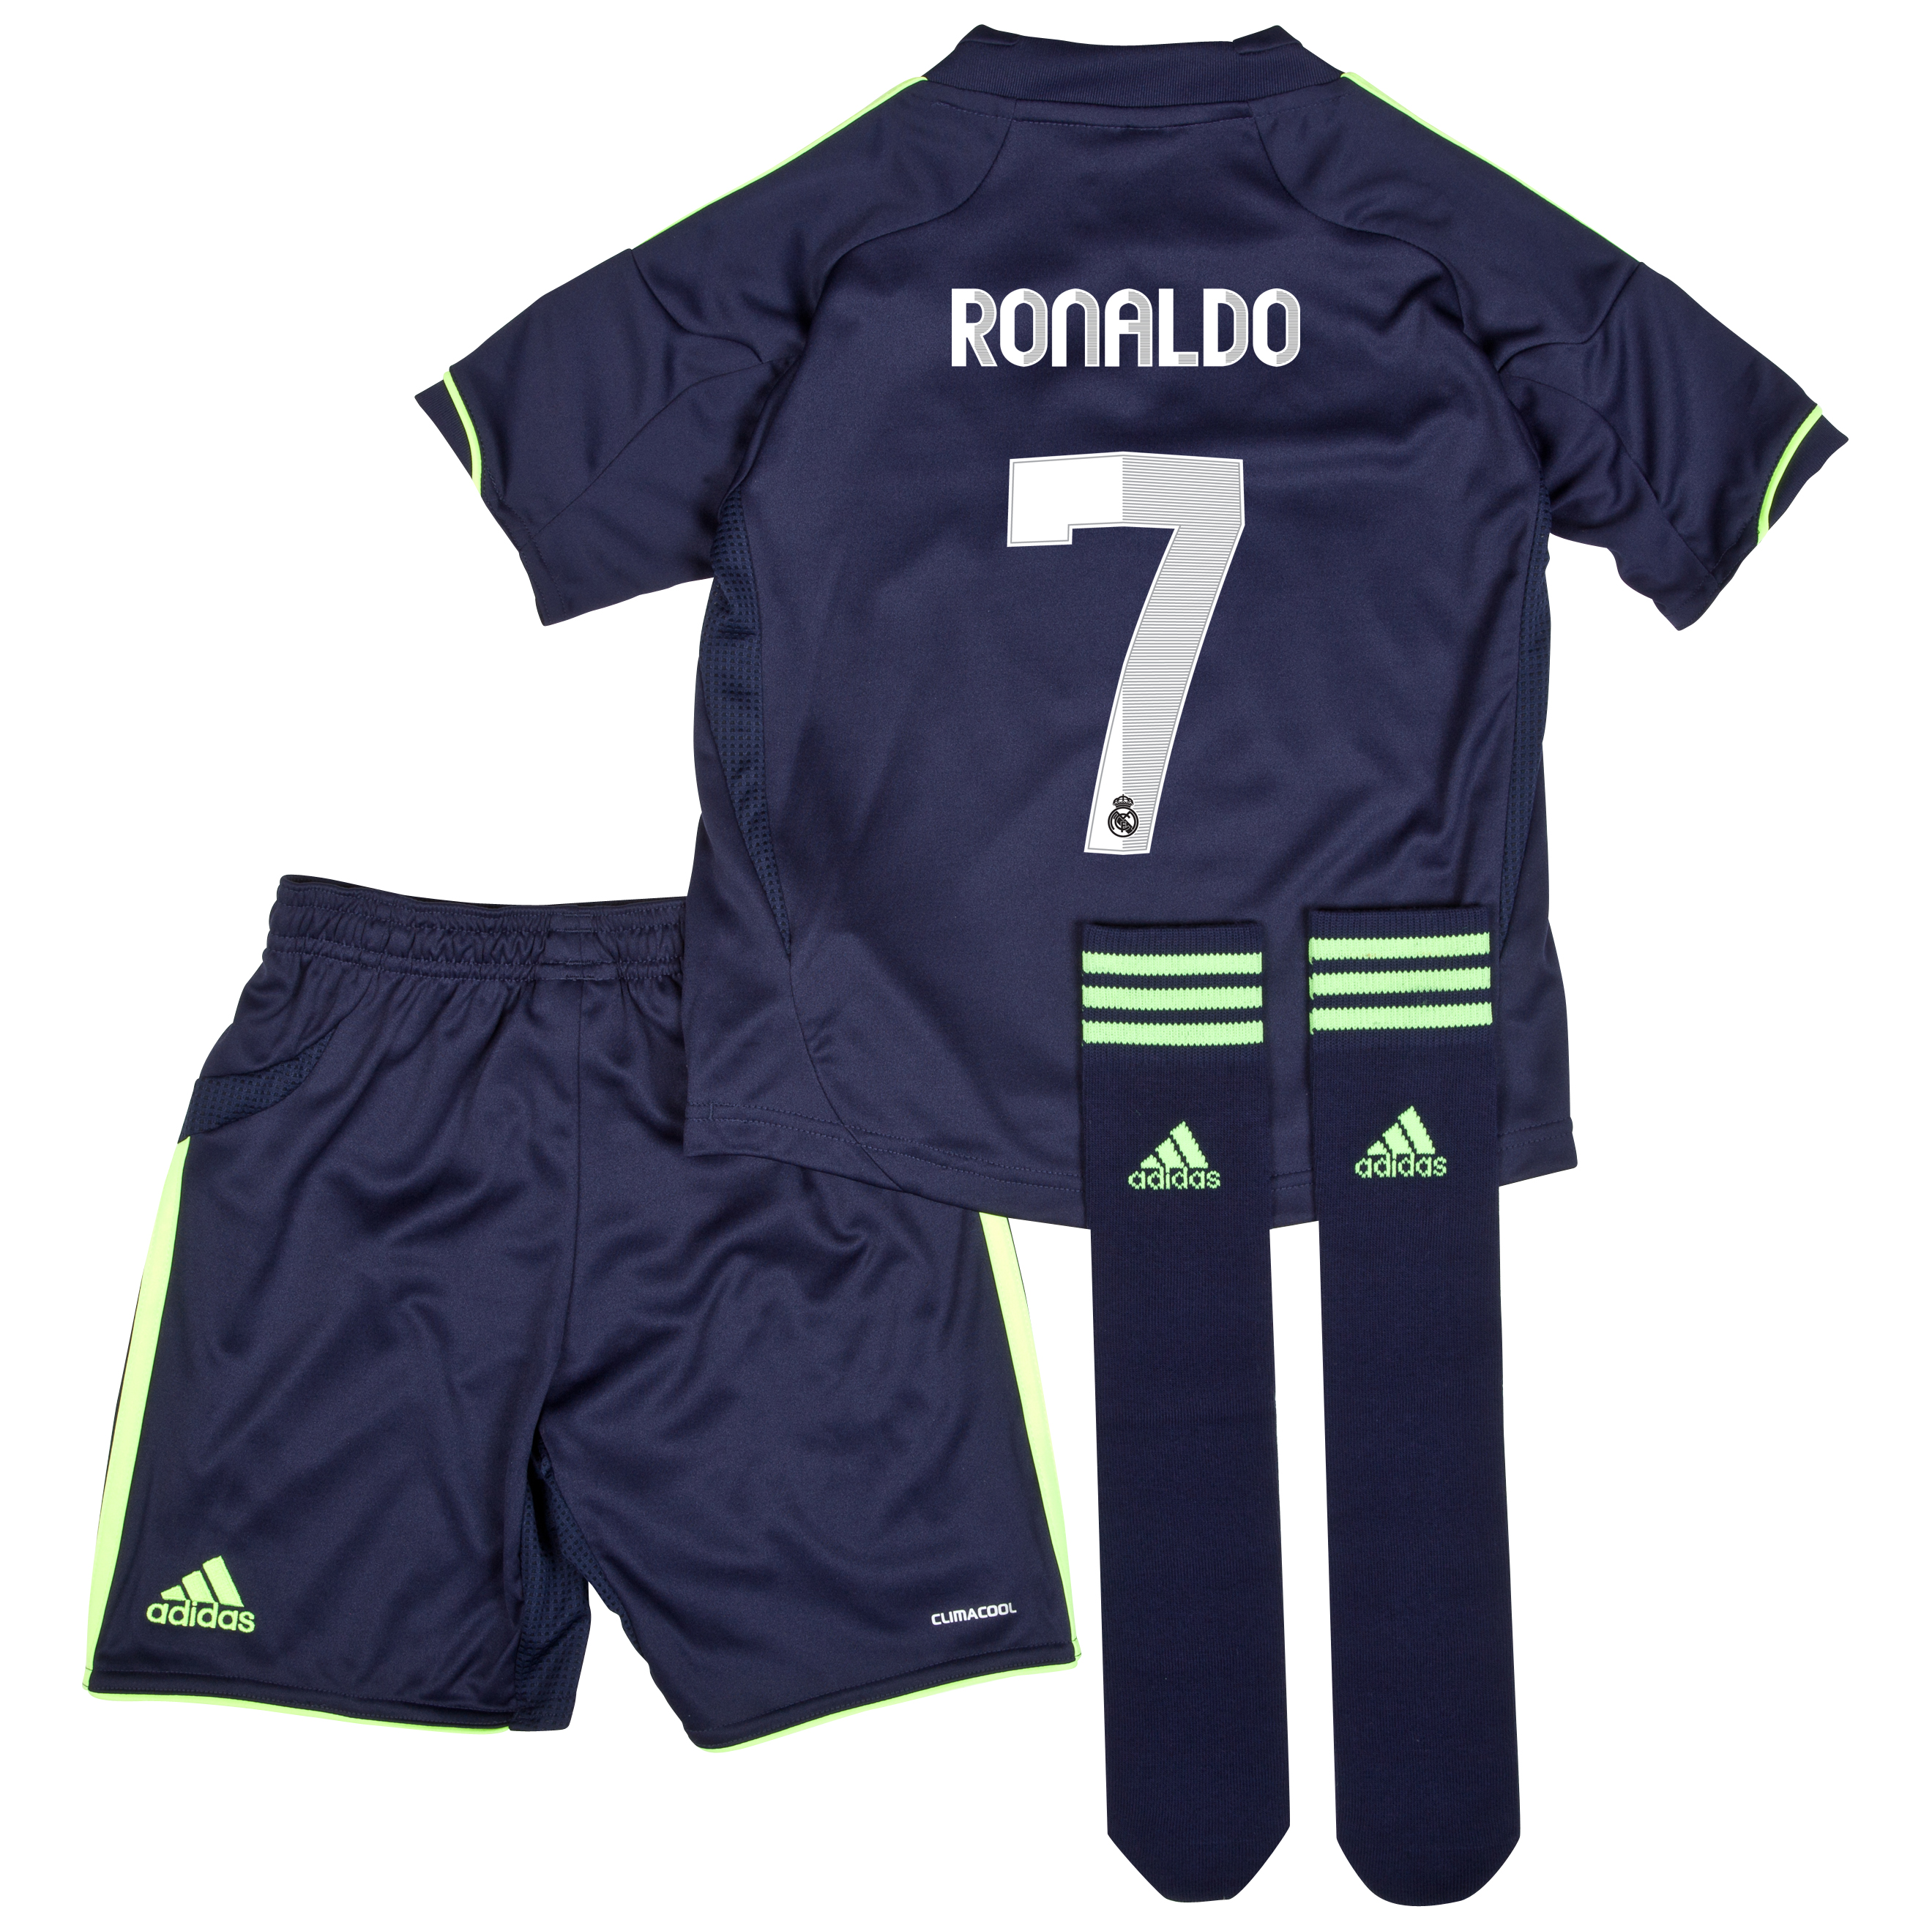 Mini kit visitante Real Madrid 2012/13 con impresión 7 Ronaldo